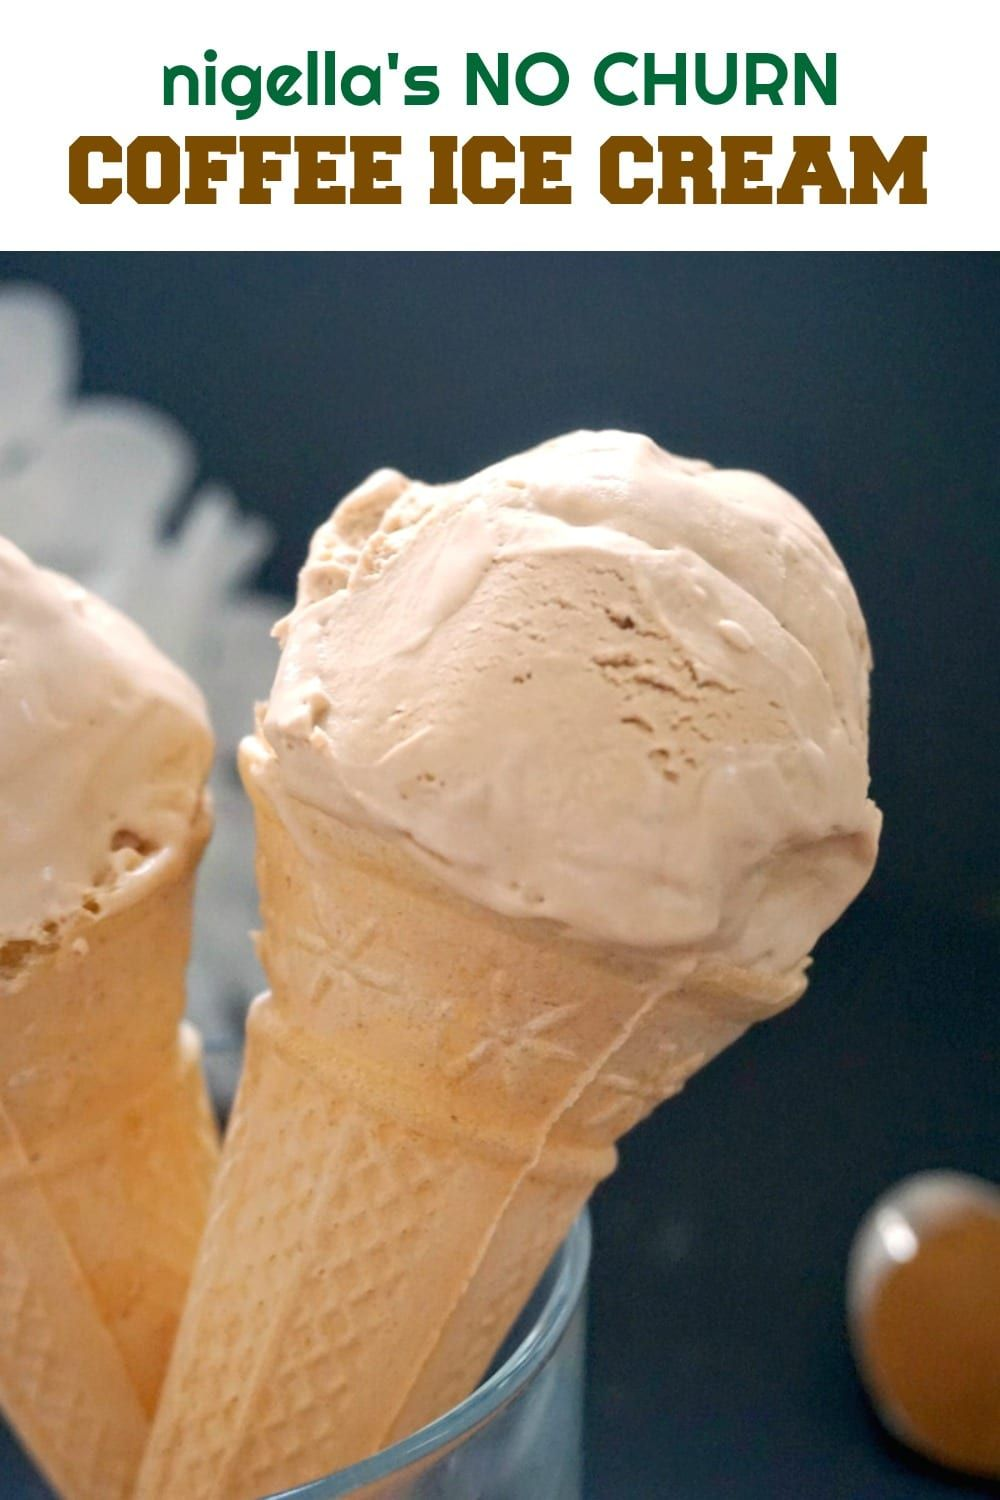 Nigella S Coffee Ice Cream A Delicious No Churn Ice Cream Made With Condensed Milk And Double Cream Coffee Ice Cream Coffee Ice Cream Recipe Ice Cream Recipes